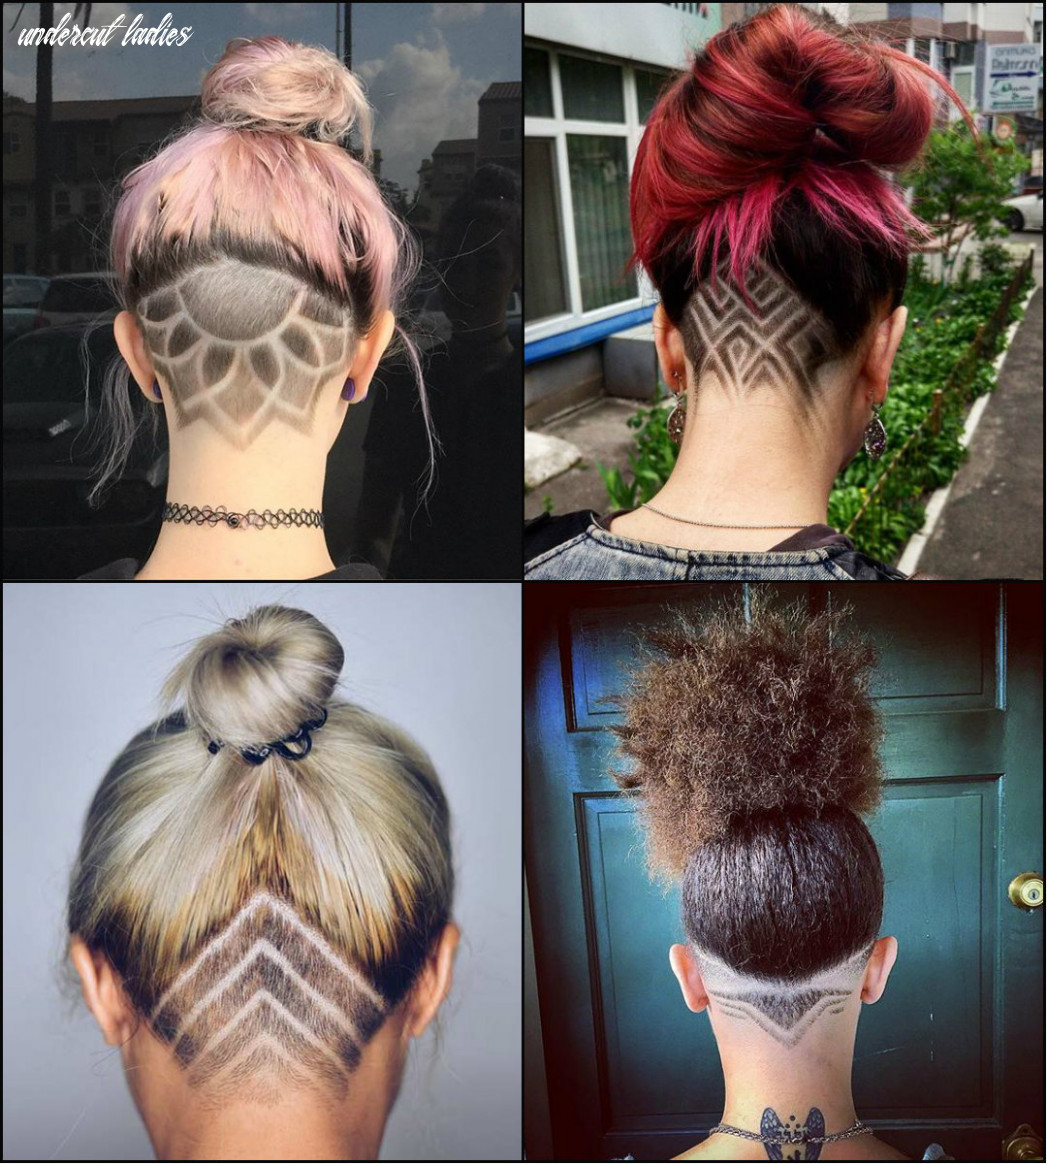 Long hairstyles: cool undercut female hairstyles to show off undercut ladies